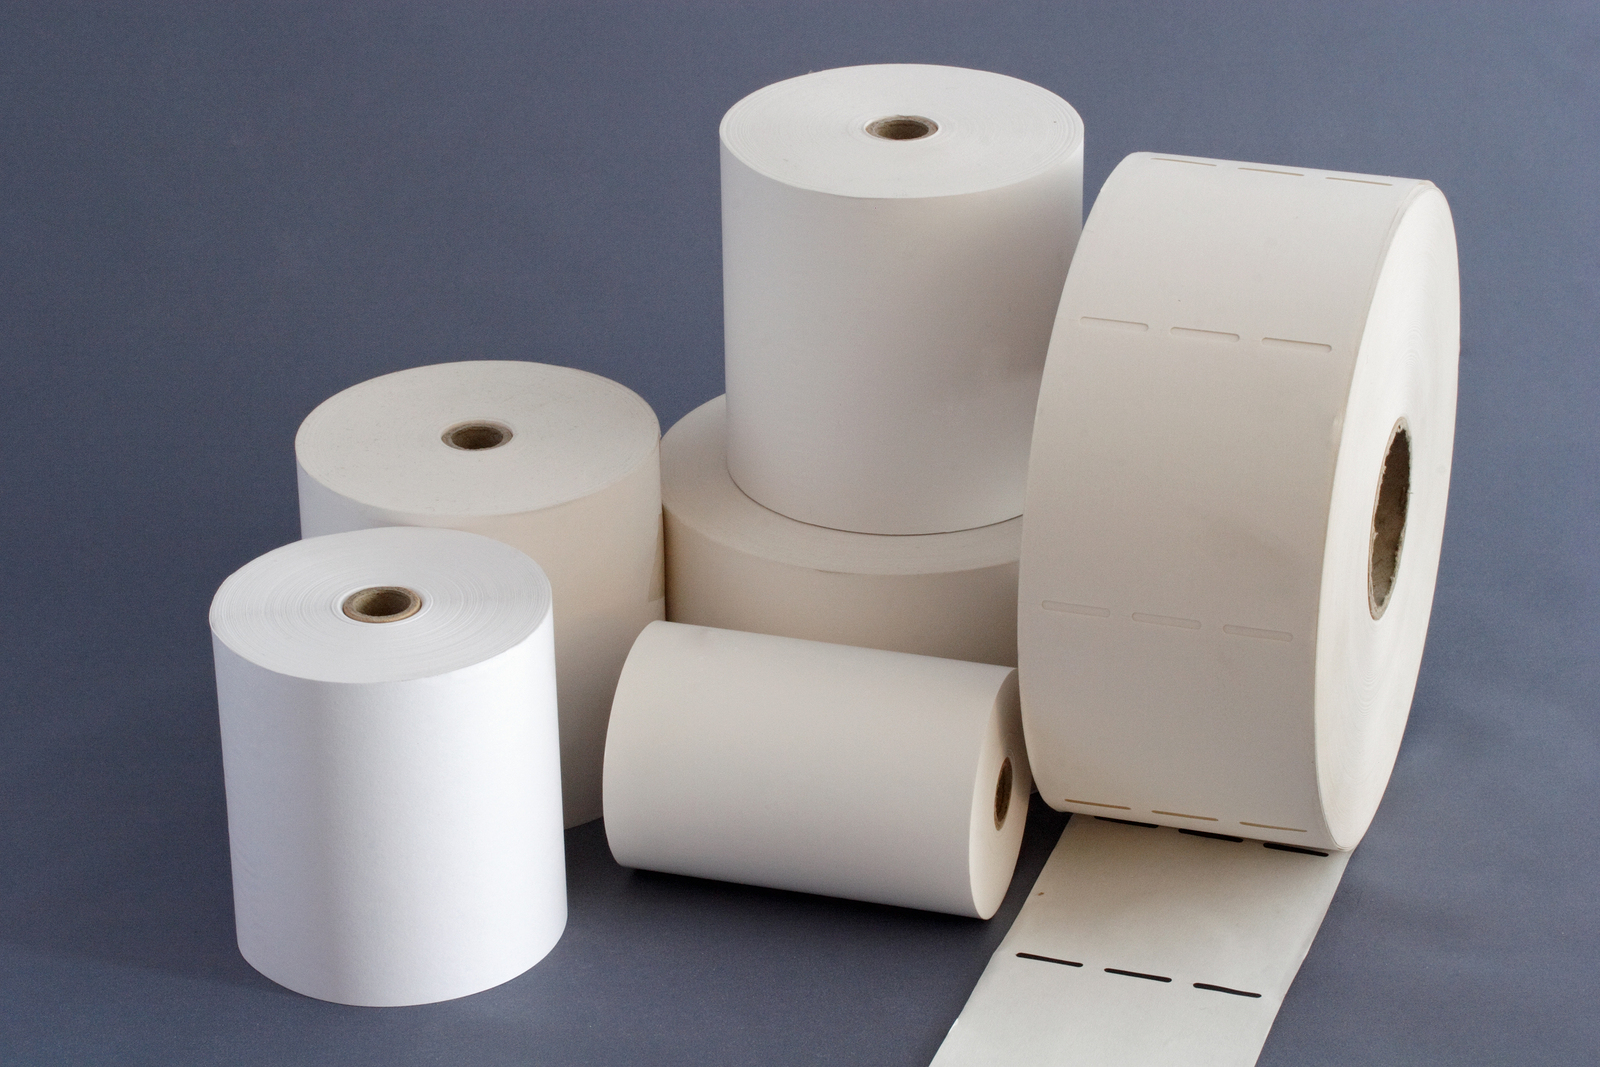 Composition of six white paper rolls with paper core for cash Register and Calling system